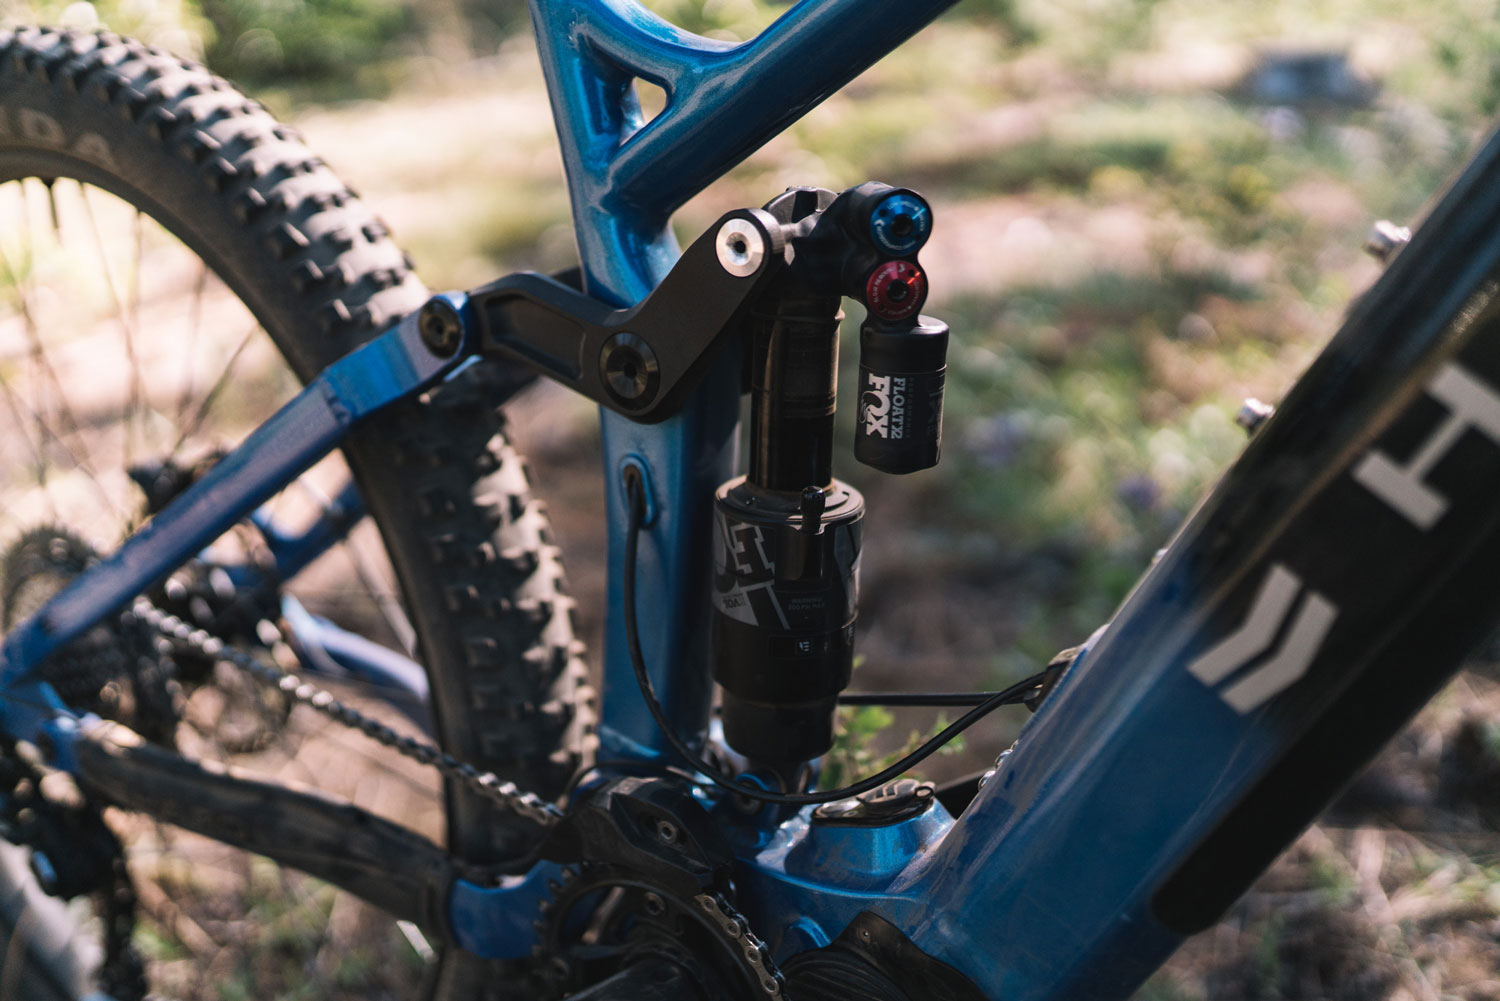 Dissected: Haro Shift Plus i/O 9 rear suspension